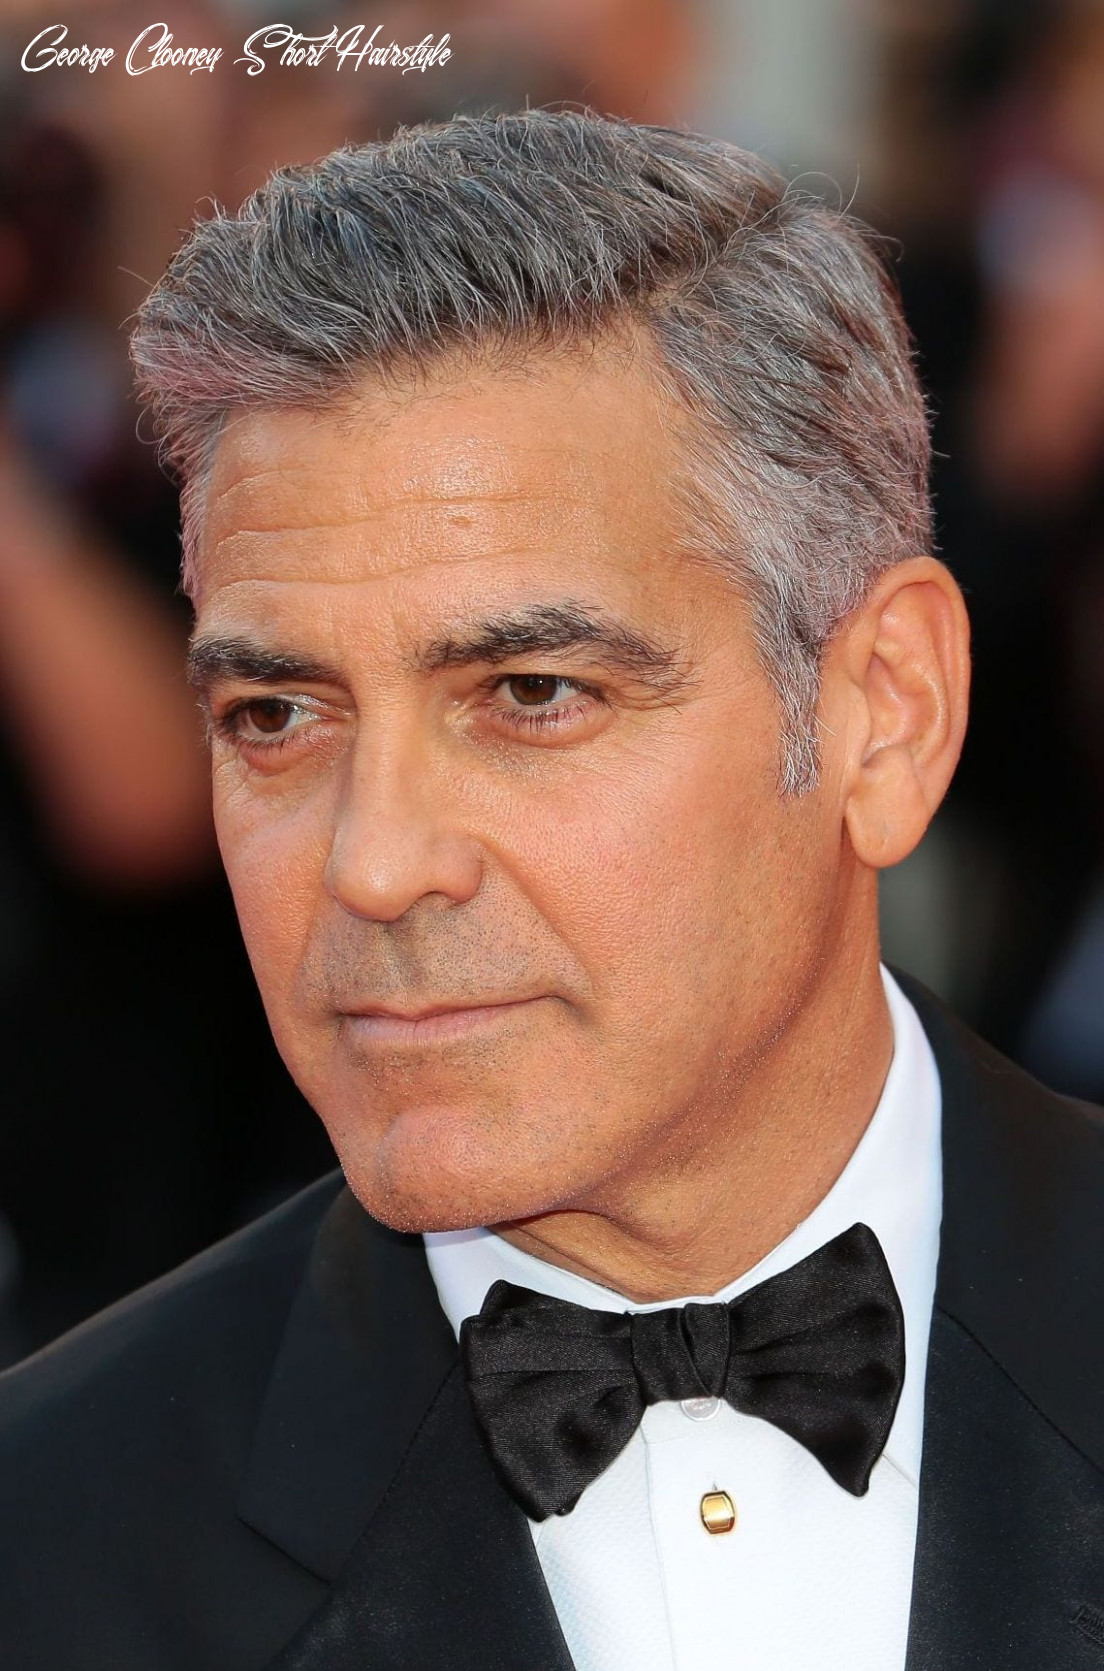 12 unique short hairstyles for men styling tips george clooney short hairstyle